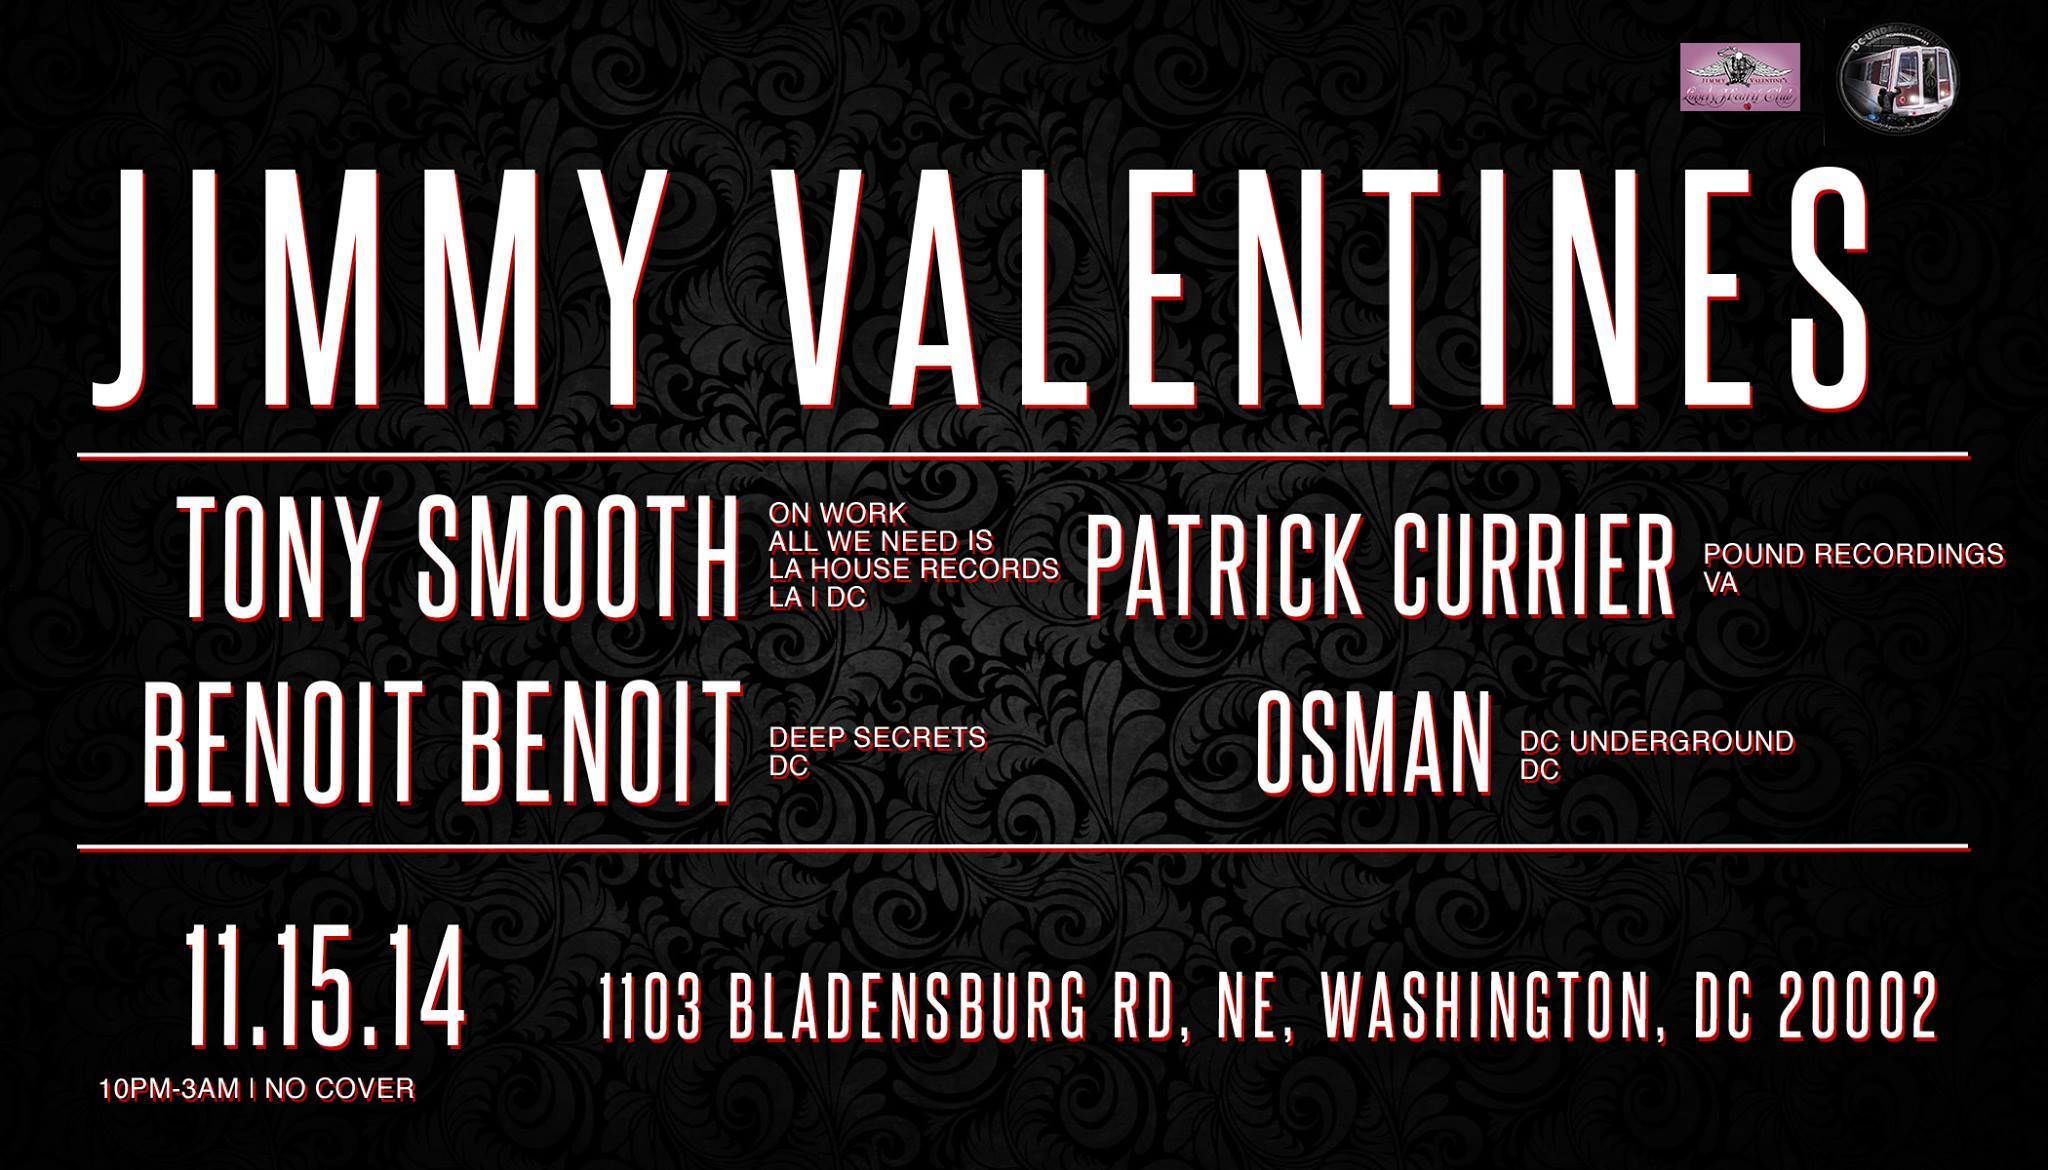 Groove Agenda: Welcome to the Underground at Jimmy Valentines